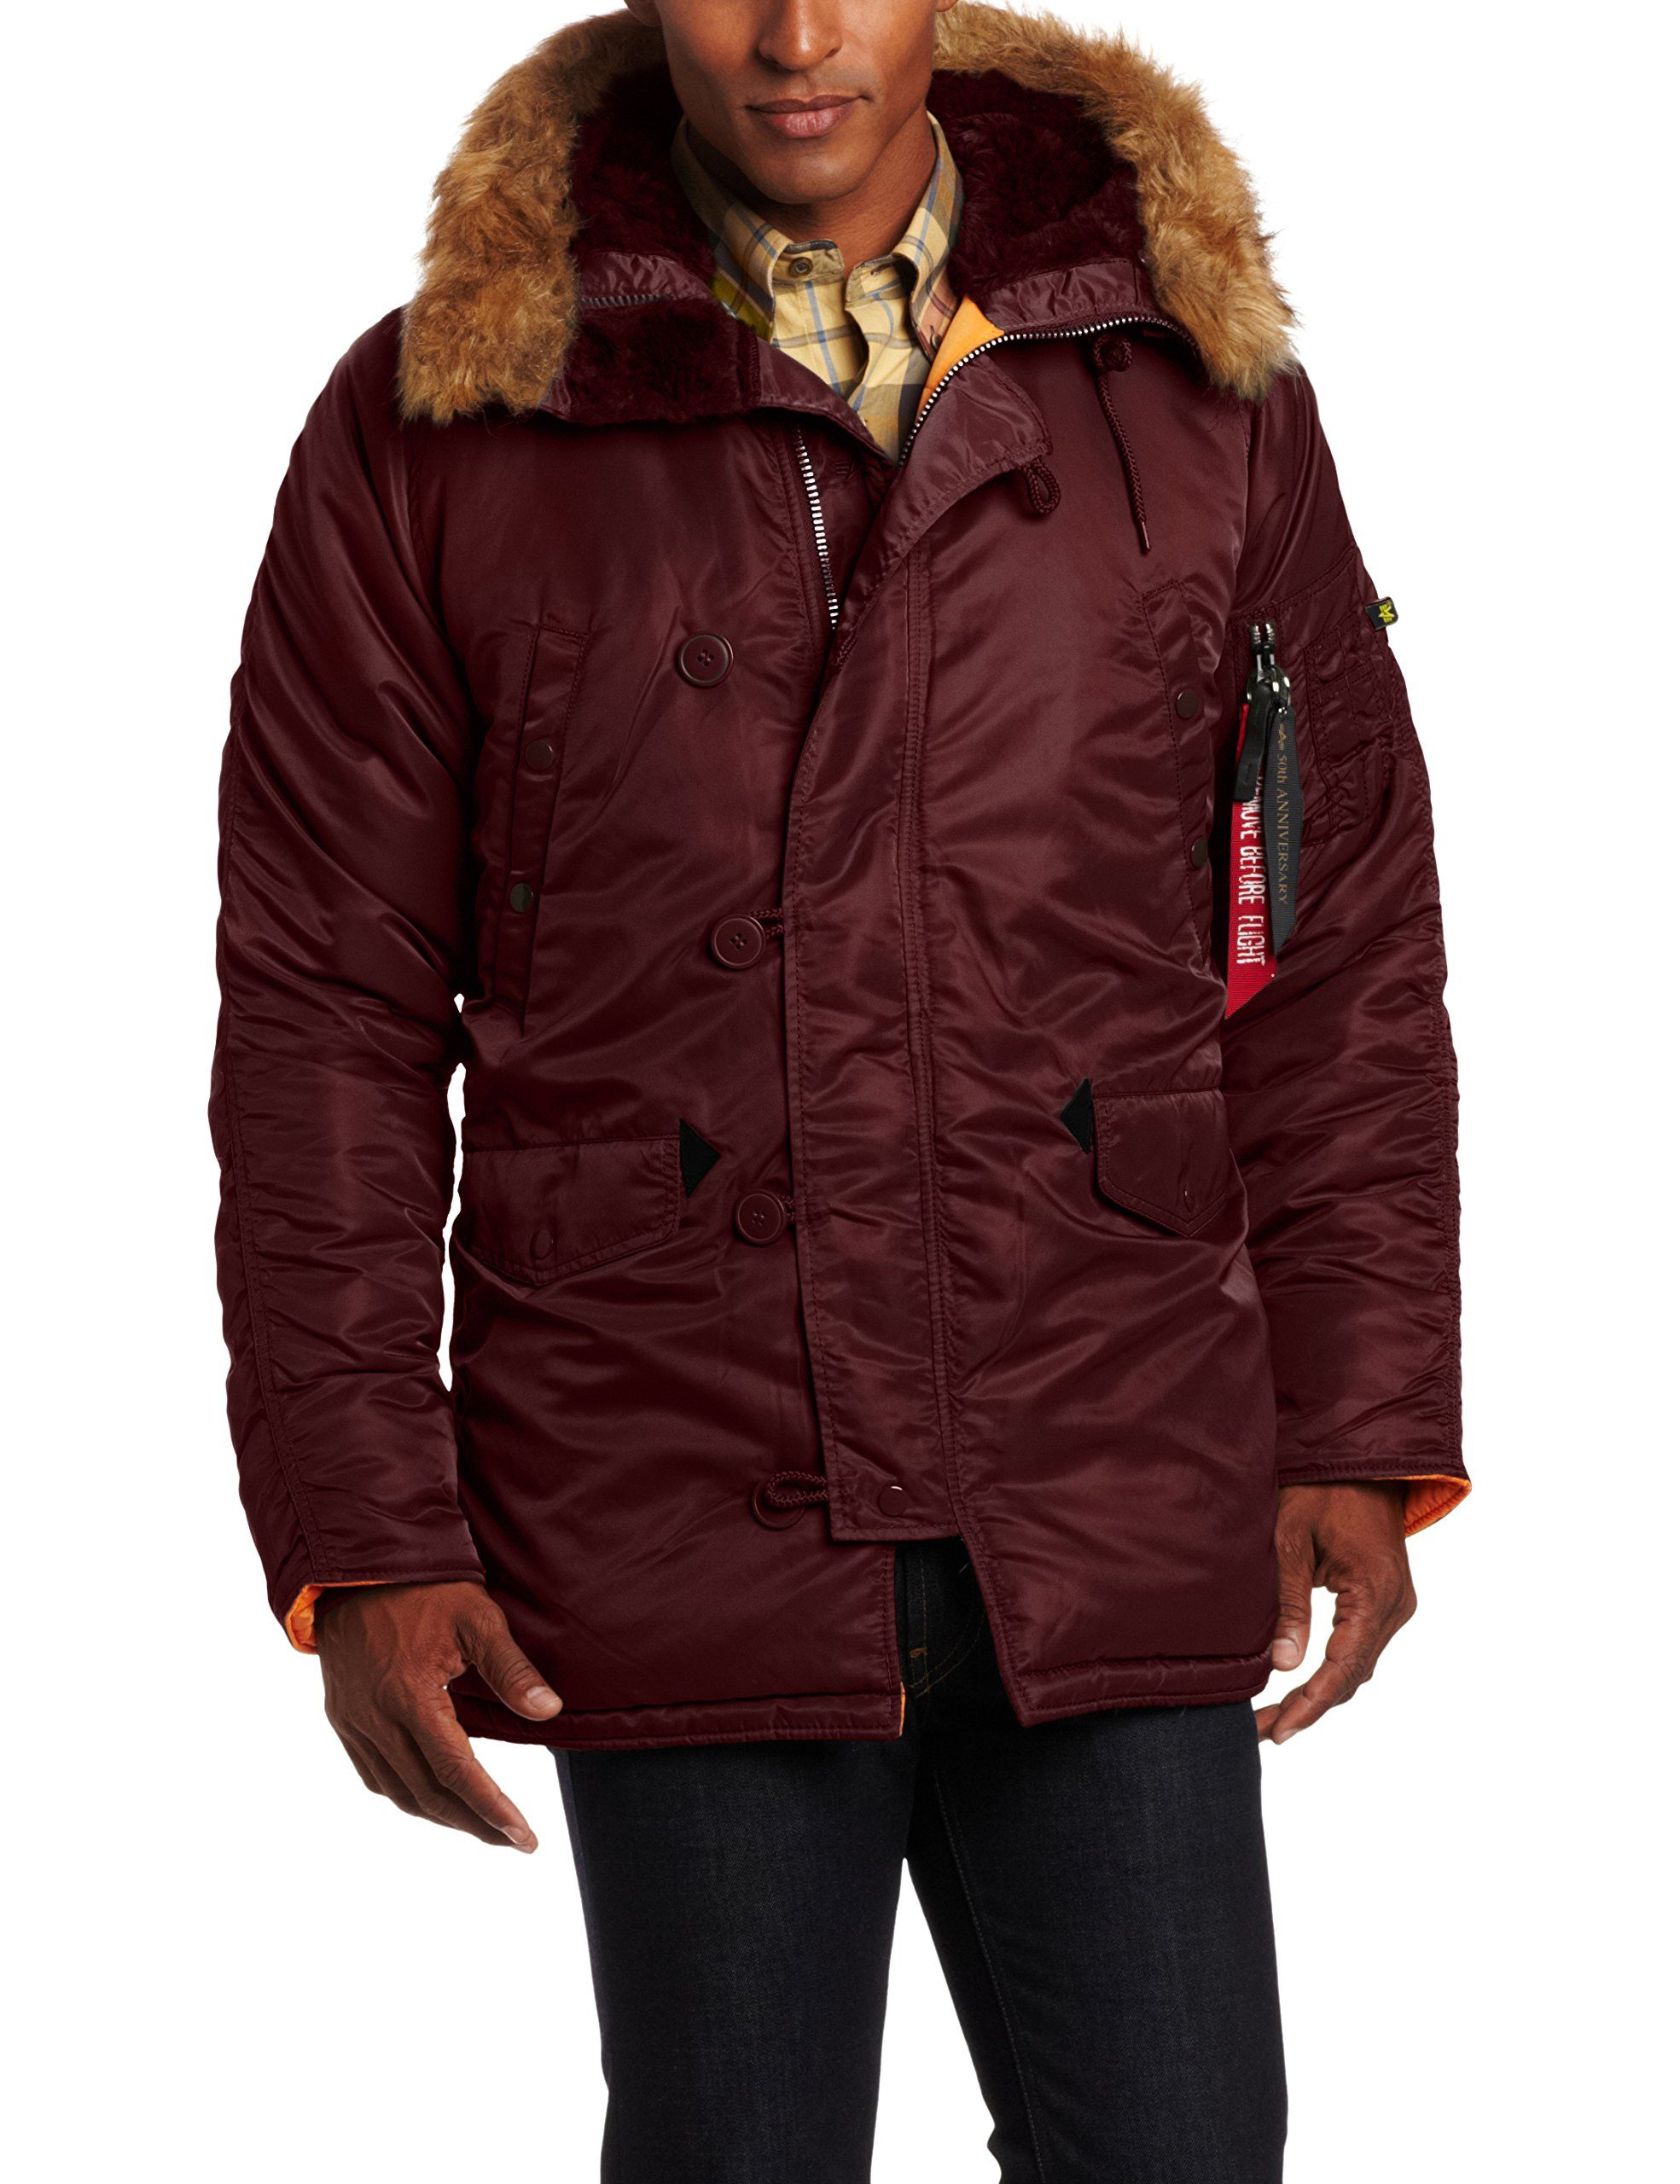 Alpha Industries Men's Slim-Fit Parka Coat with Removable Faux-Fur Hood  Trim The Slimfit is a cold-weather parka designed for extreme weather.